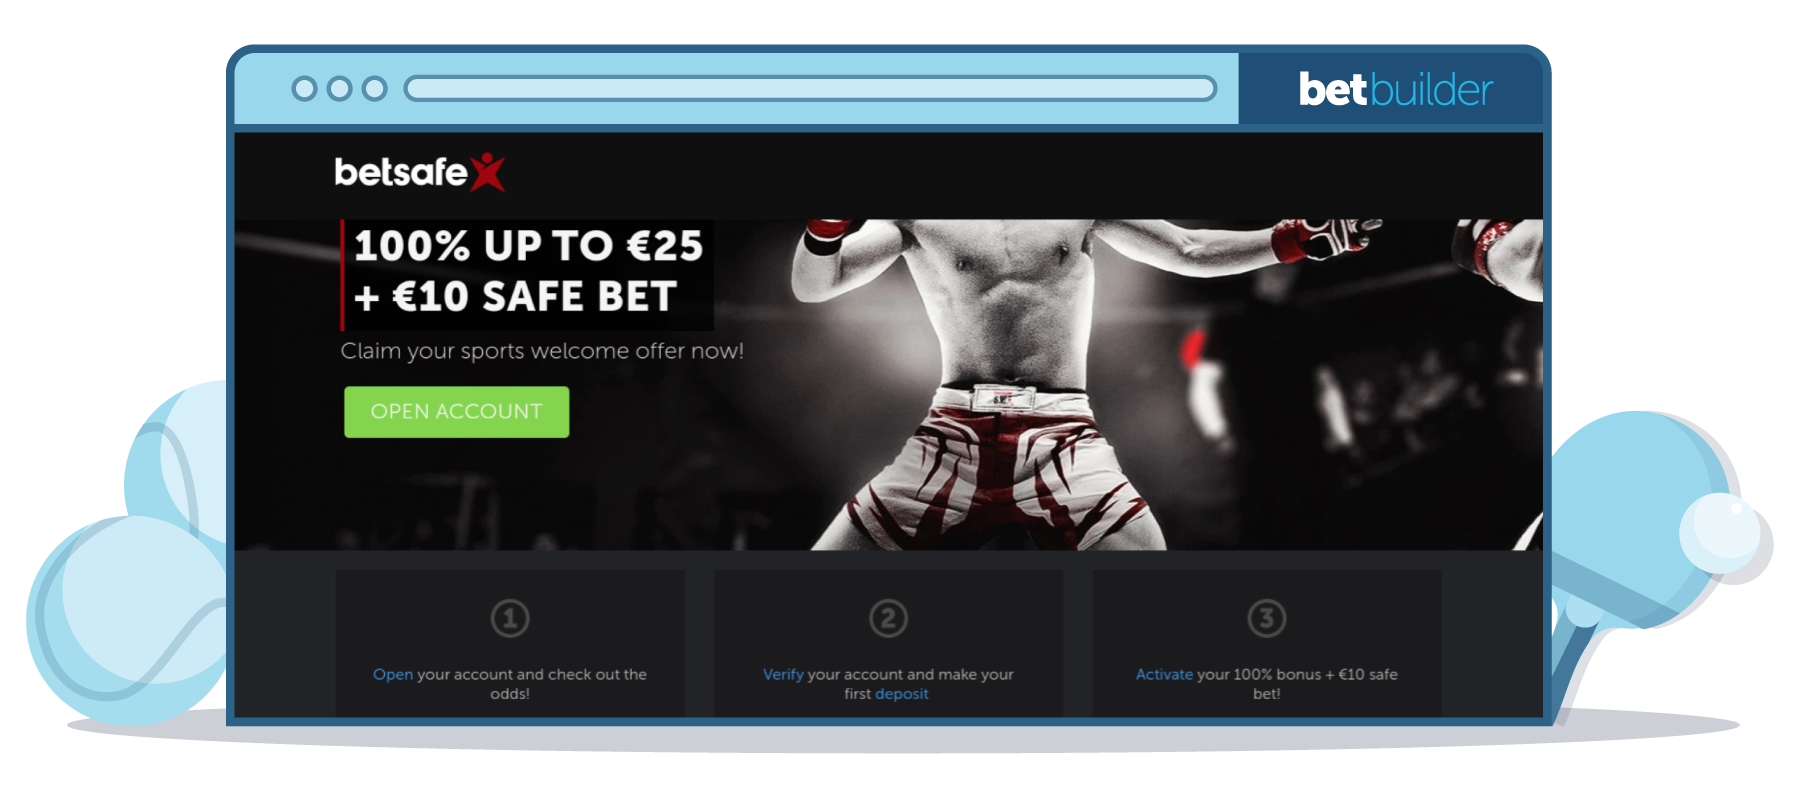 Betsafe The Best Bookmaker And Casino